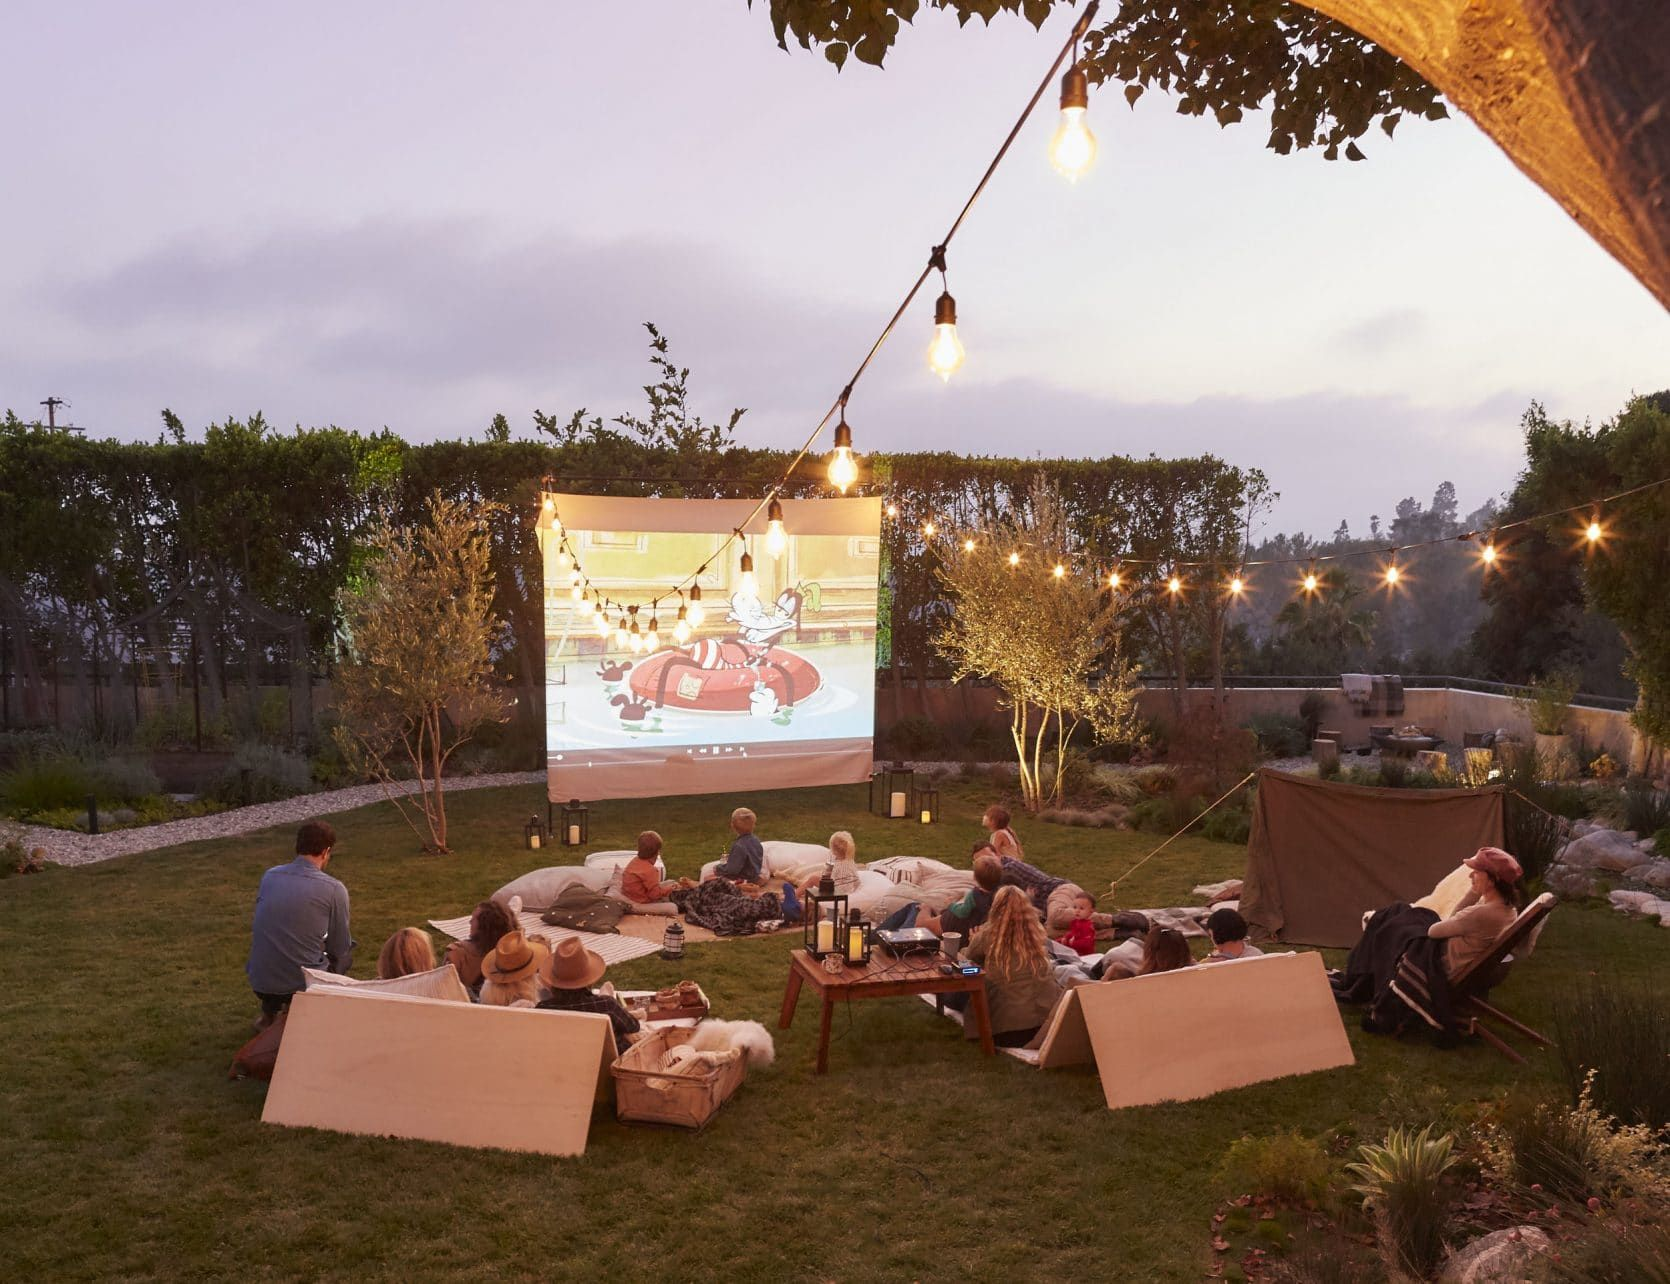 The Ultimate Outdoor Movie Night and Campout with Intel - Emily Henderson |  Outdoor movie nights, Outdoor movie party, Backyard movie party